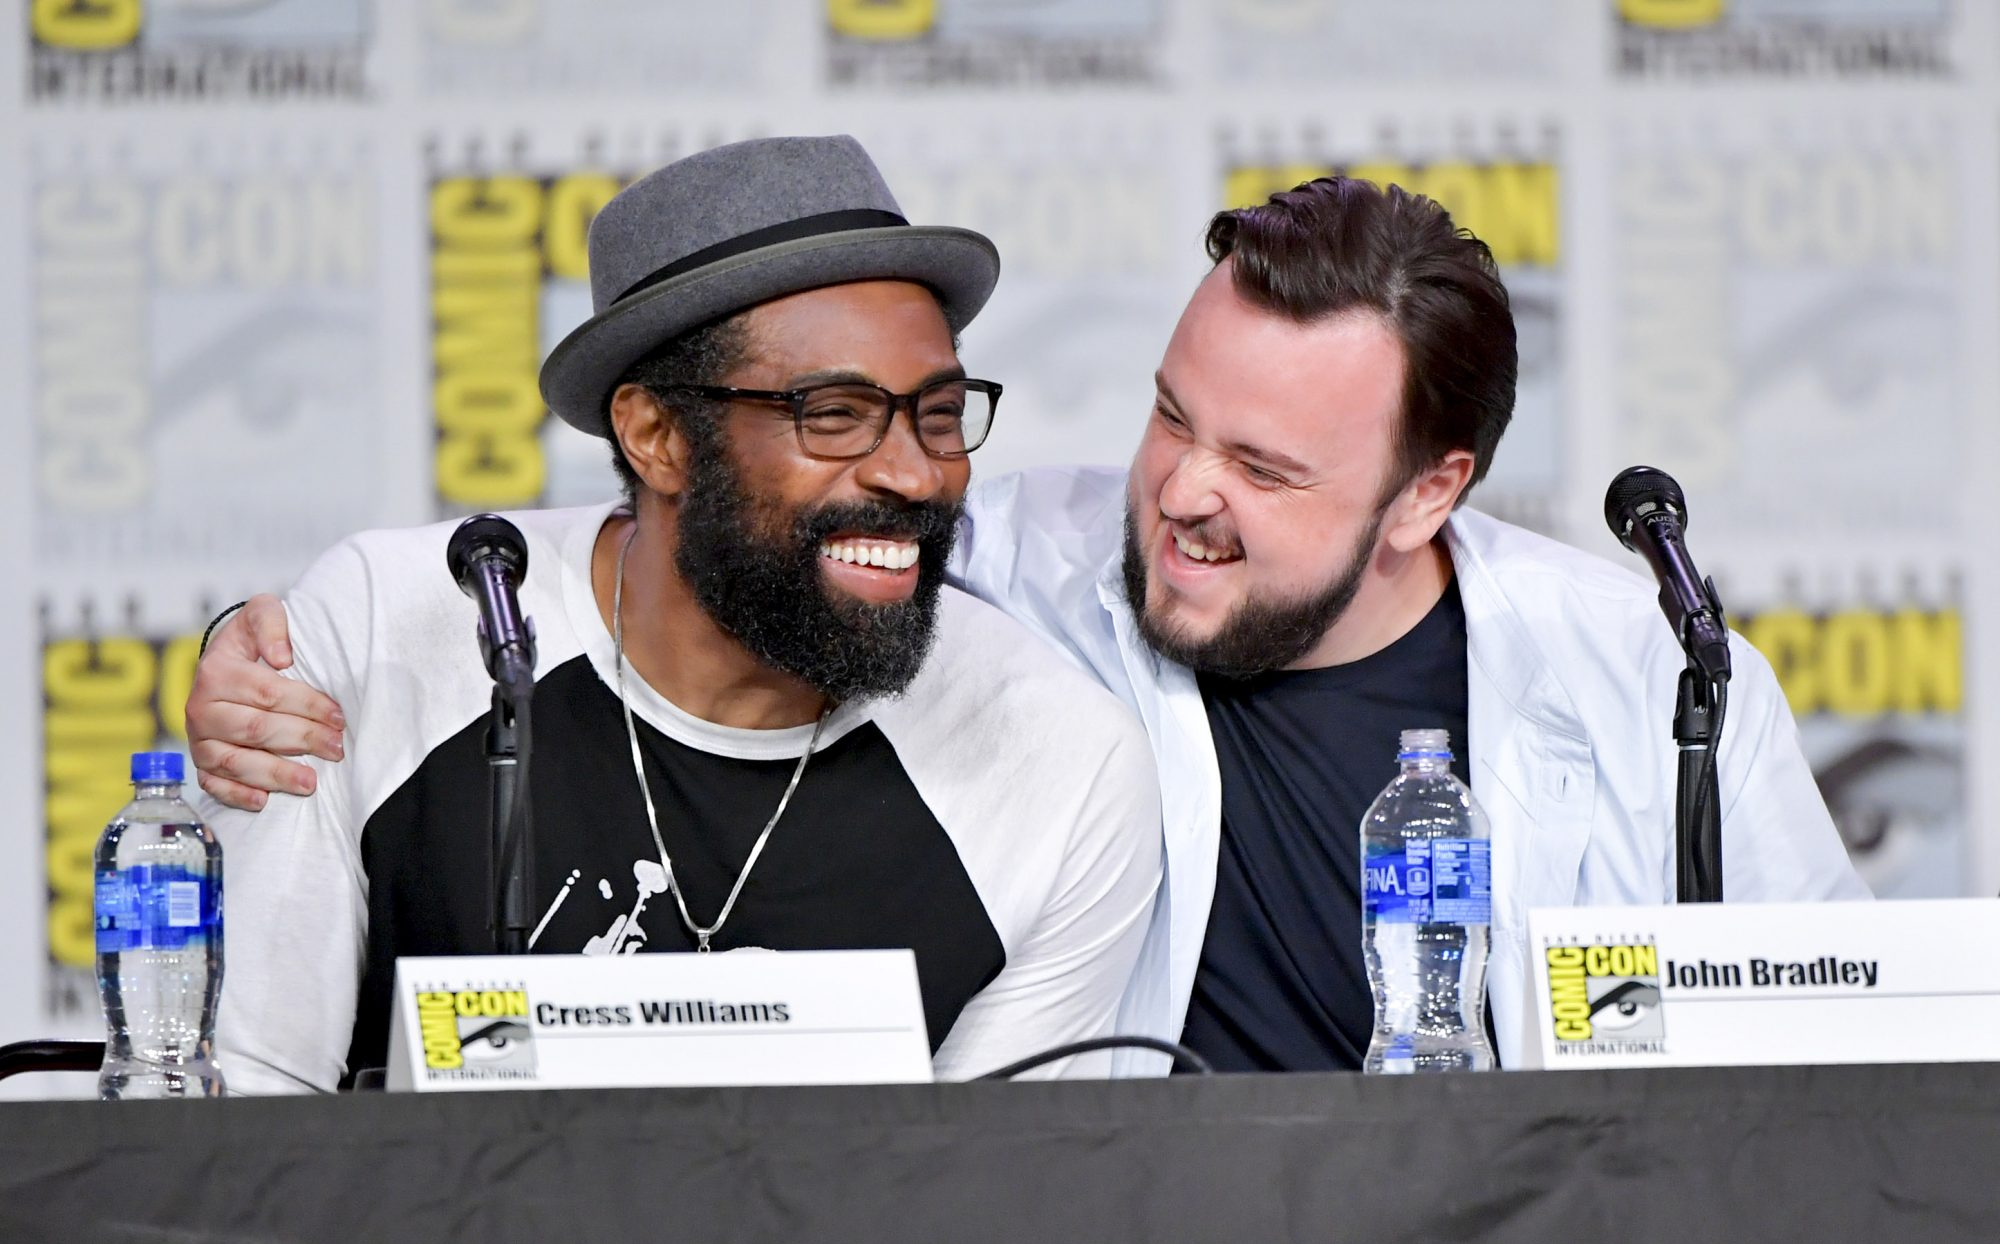 SAN DIEGO, CALIFORNIA - JULY 19: Cress Williams and Joh Bradley speak onstage during Entertainment Weekly: Brave Warriors at San Diego Convention Center on July 19, 2019 in San Diego, California. (Photo by Amy Sussman/Getty Images)